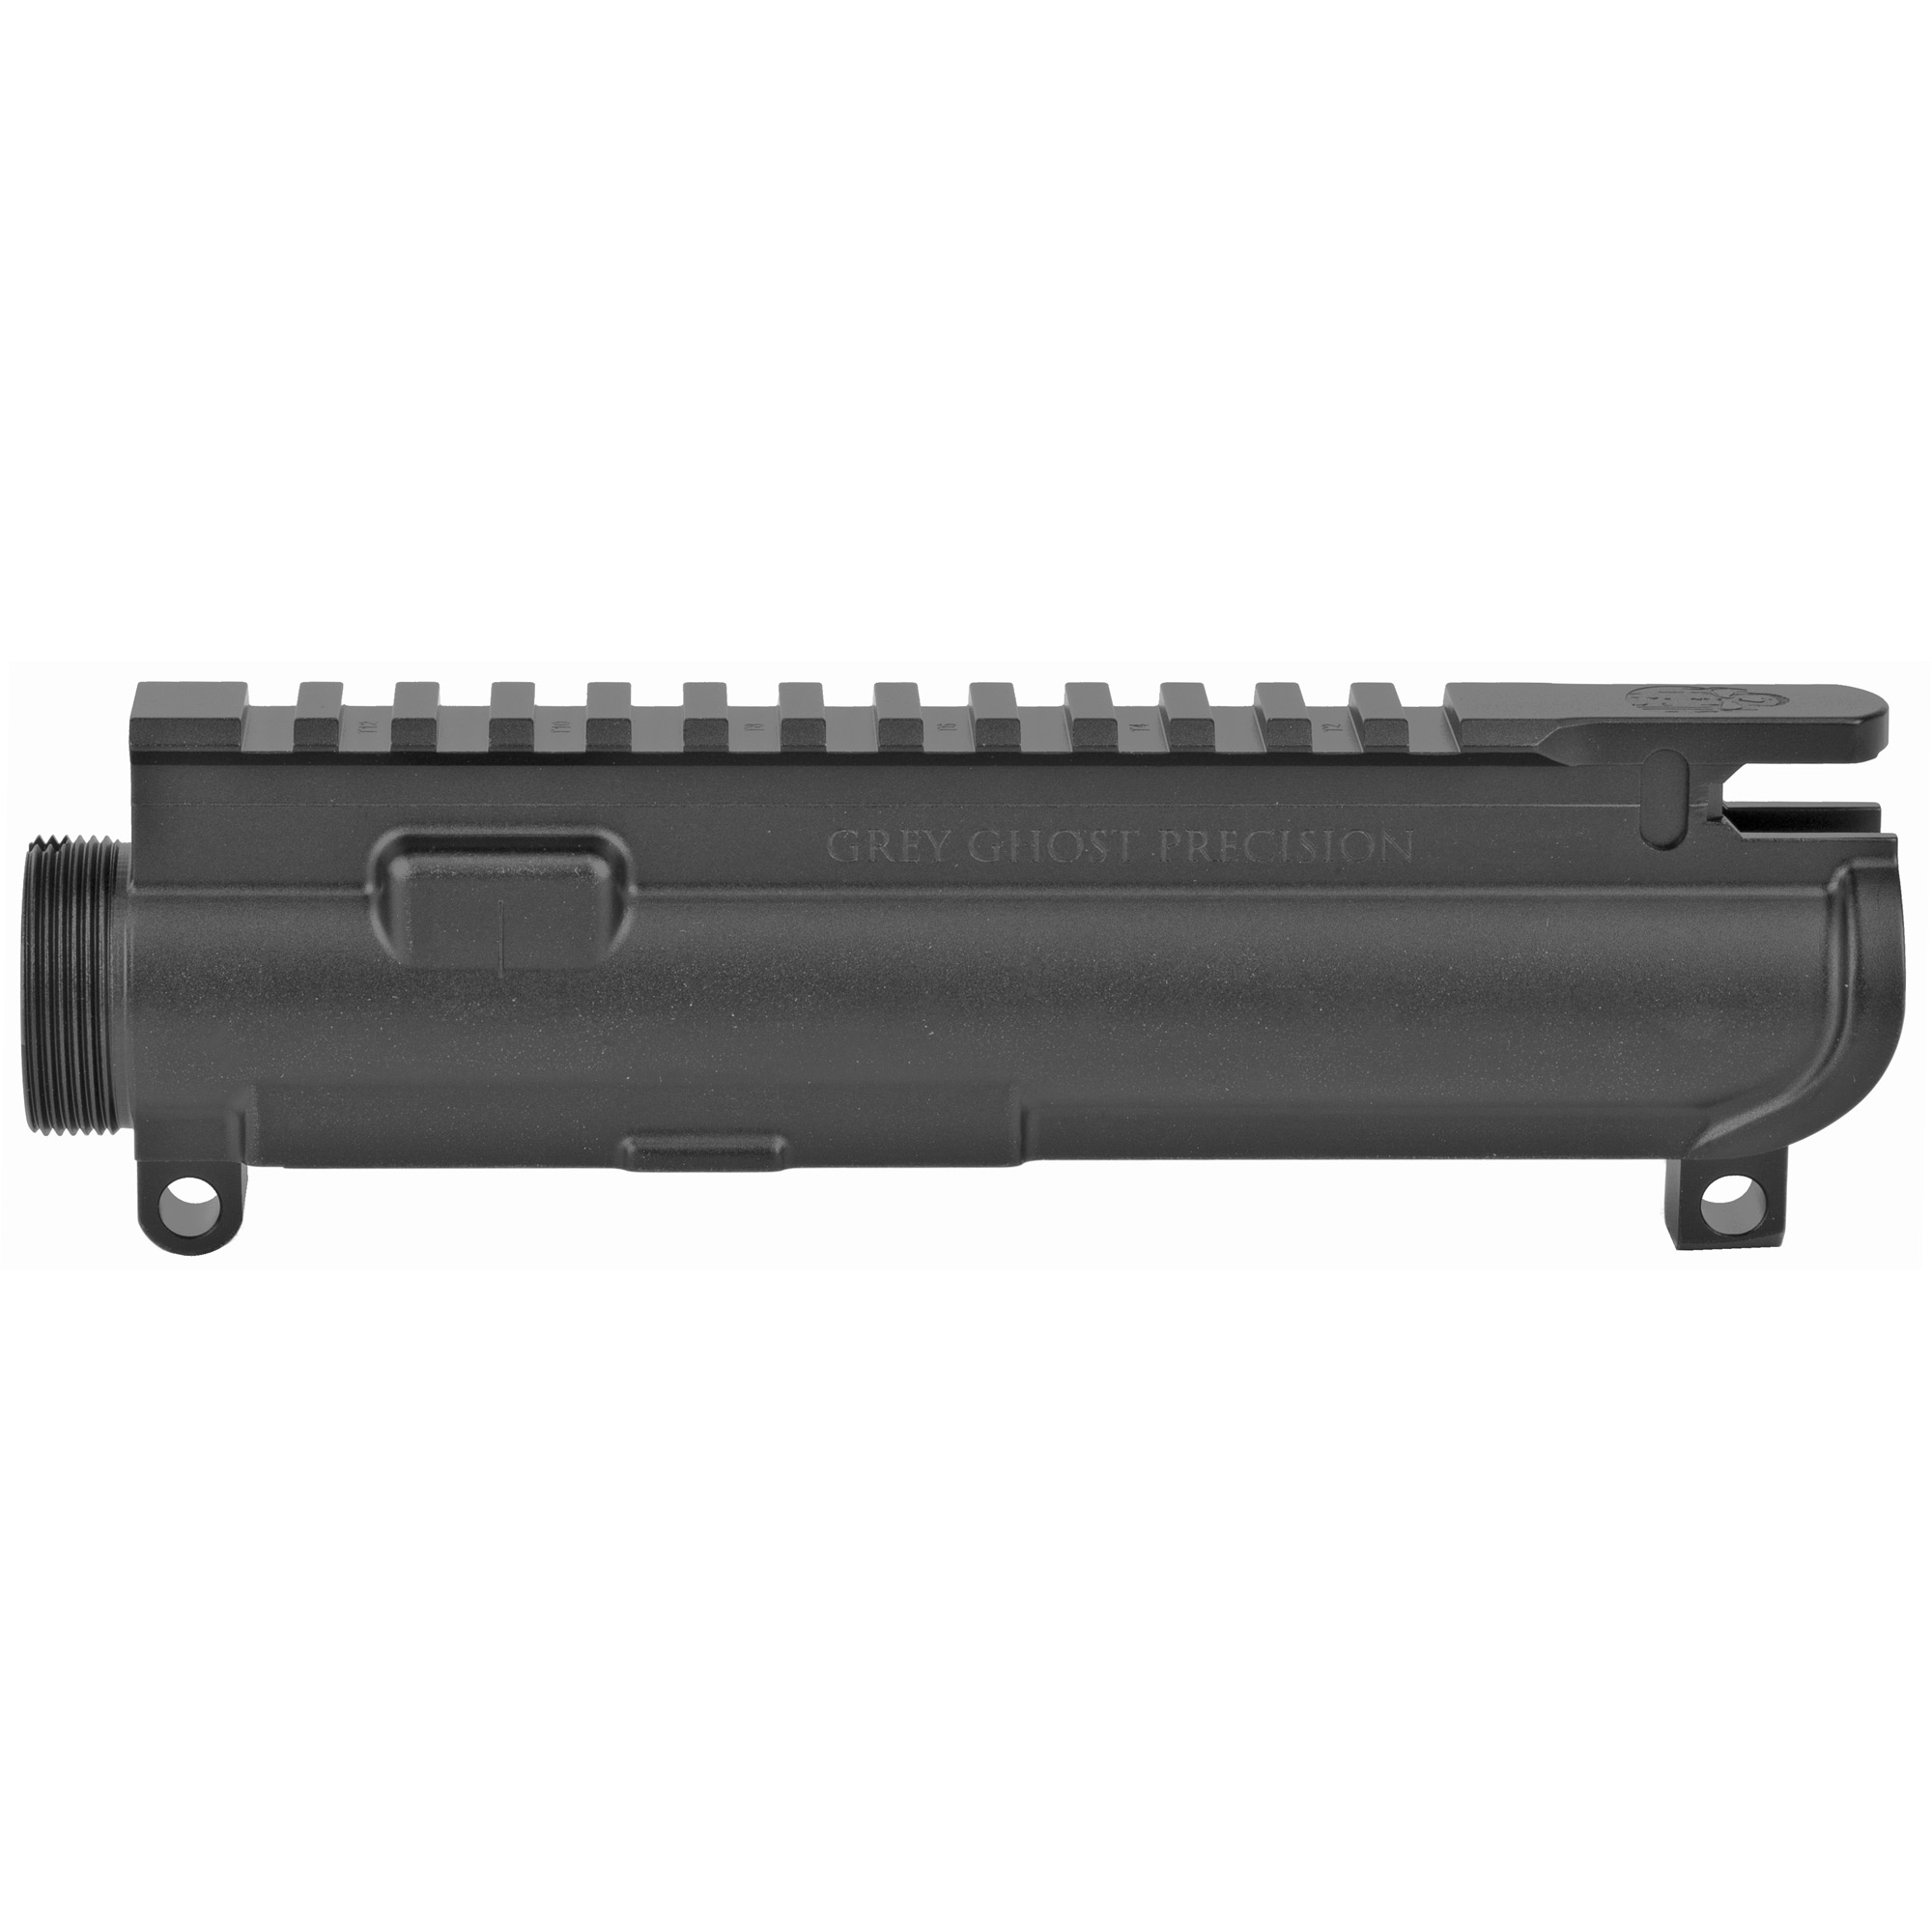 Ggp Forged Upper Receiver